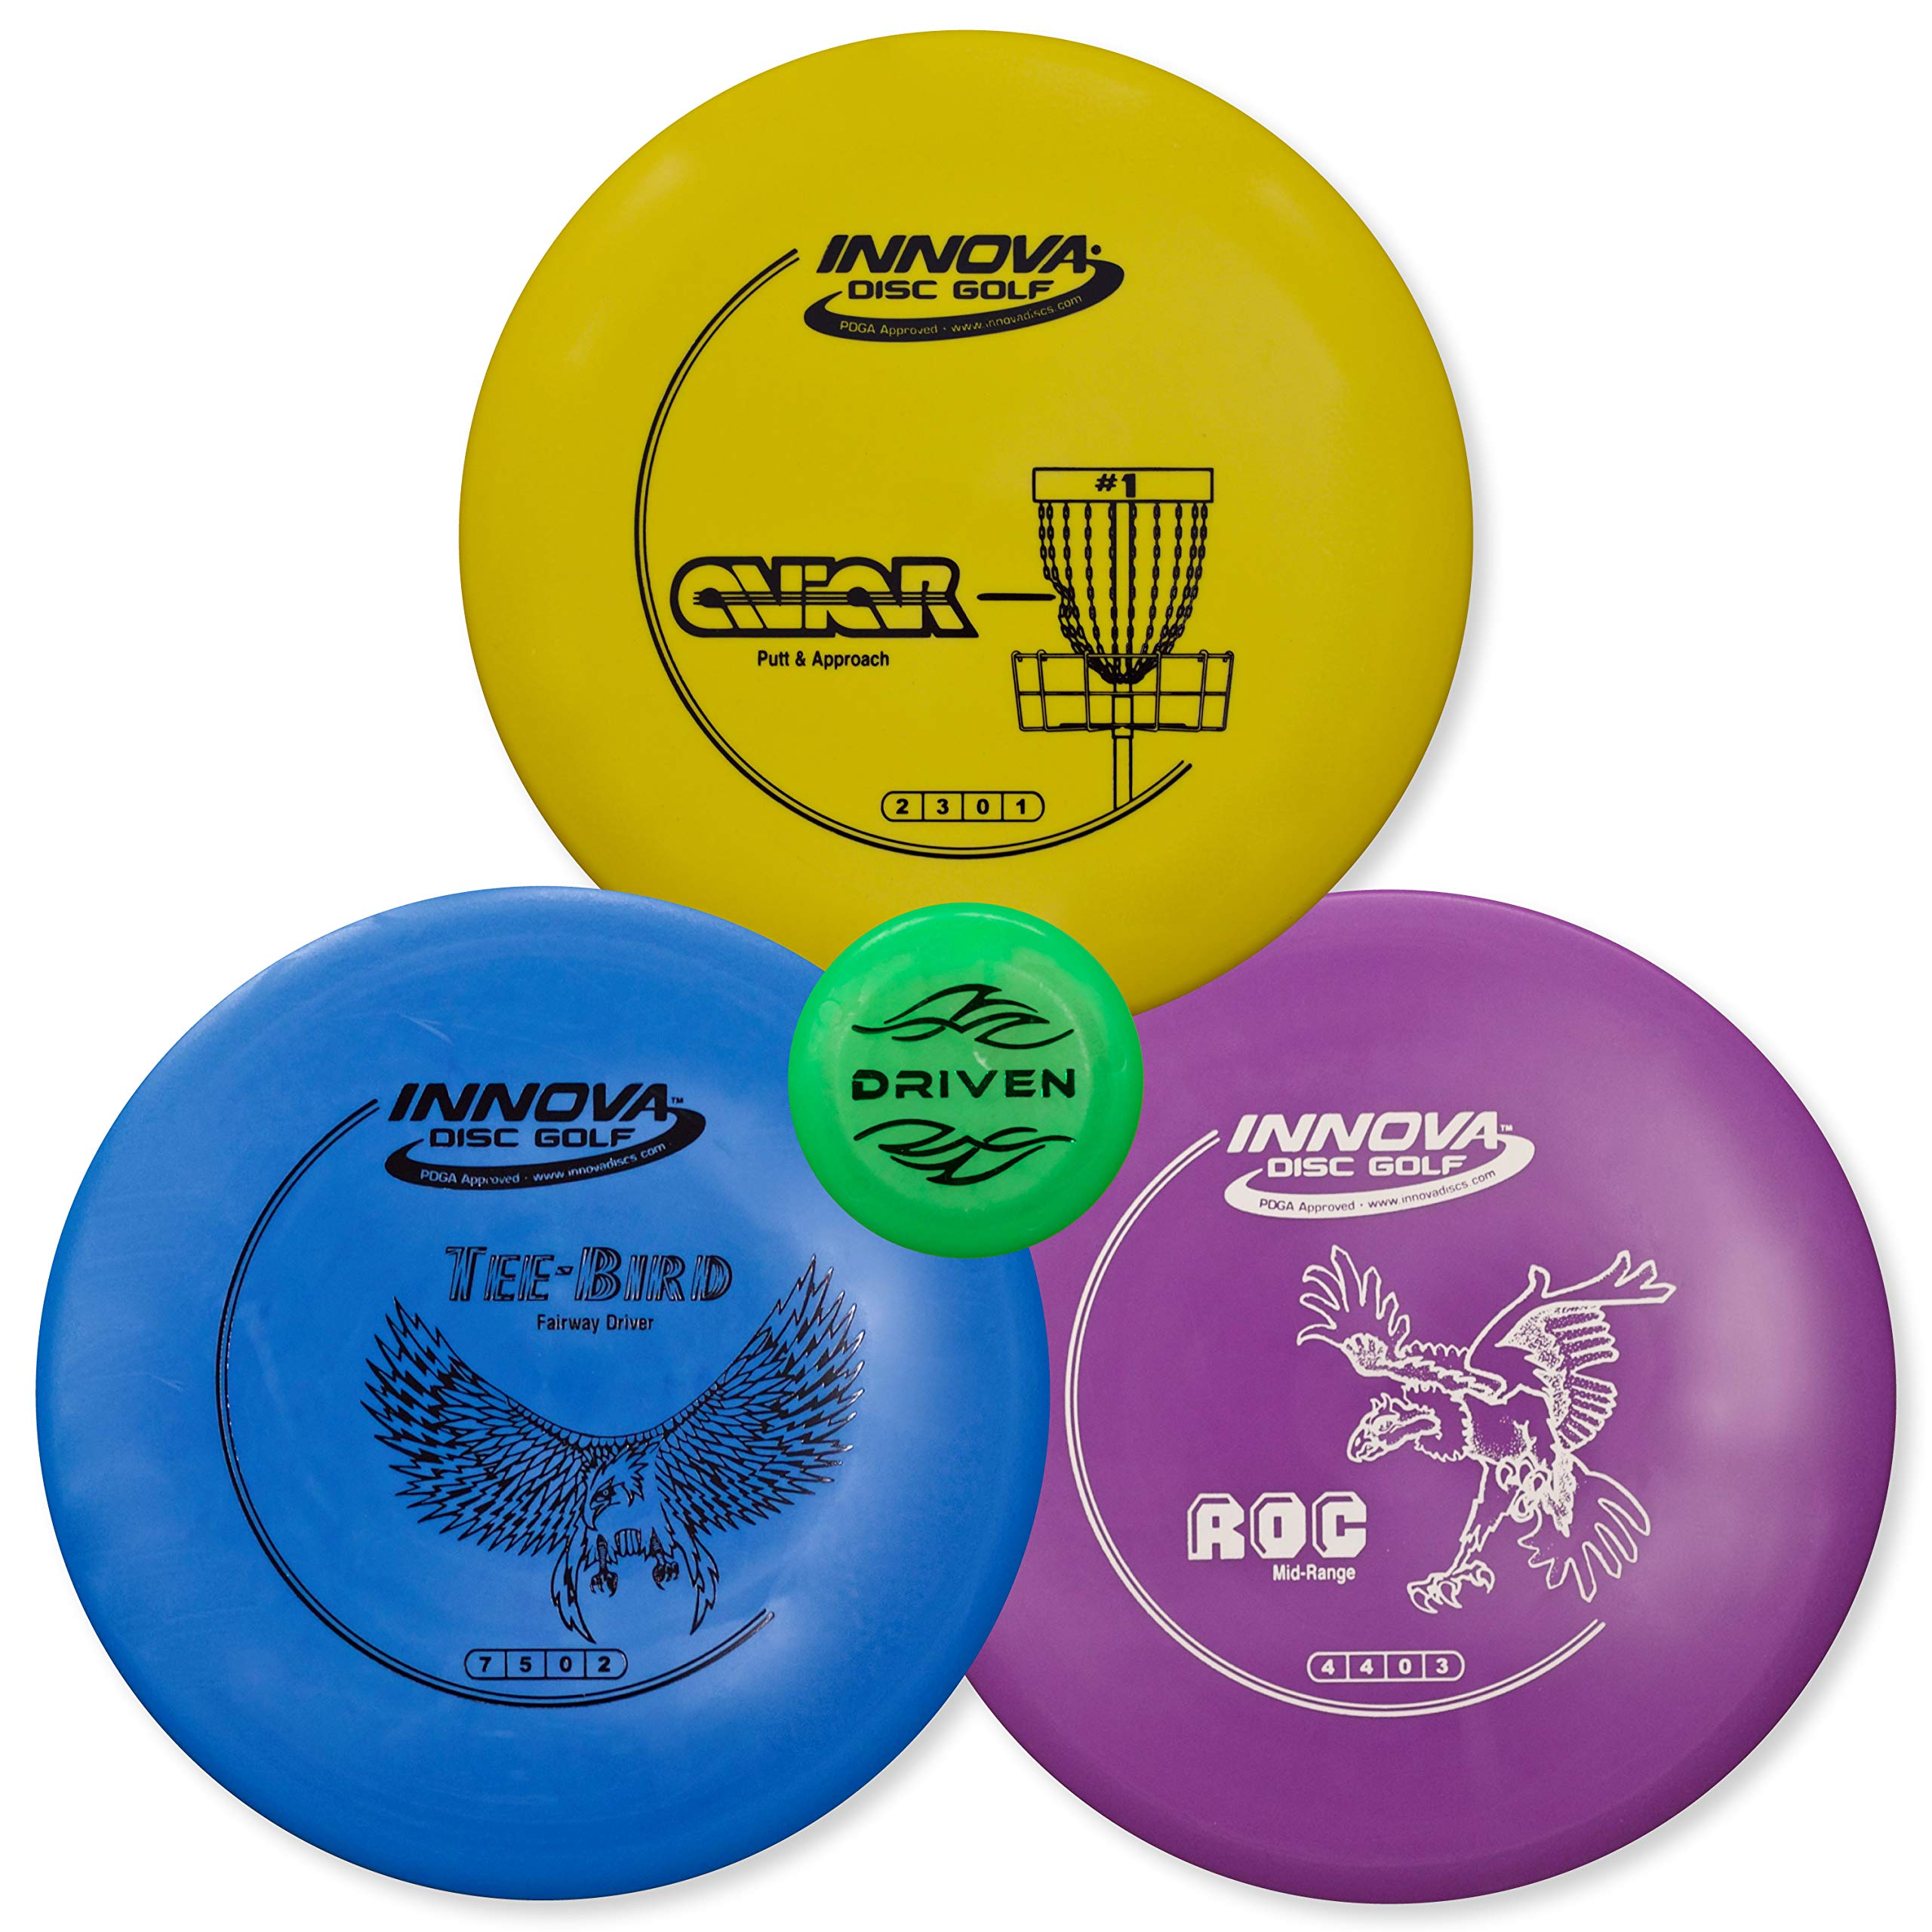 Innova Disc Golf Starter Set | Beginner Discs - 1025 Putting Game - Flight Reference Card - Driven Mini Marker | Disc Colors Vary (3 Disc Set - TeeBird, ROC, Aviar (Colors Vary))